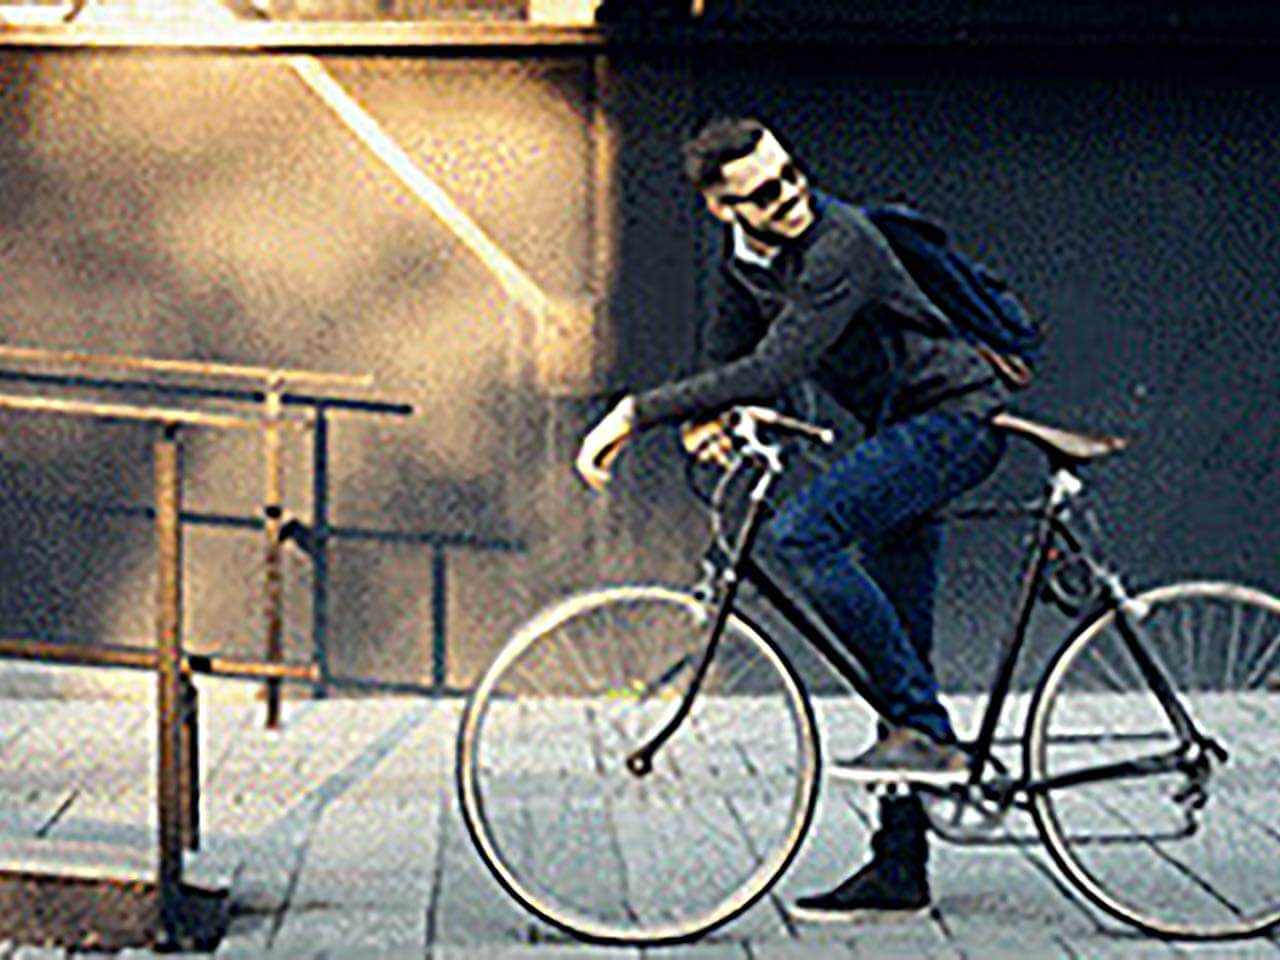 man cycling to work